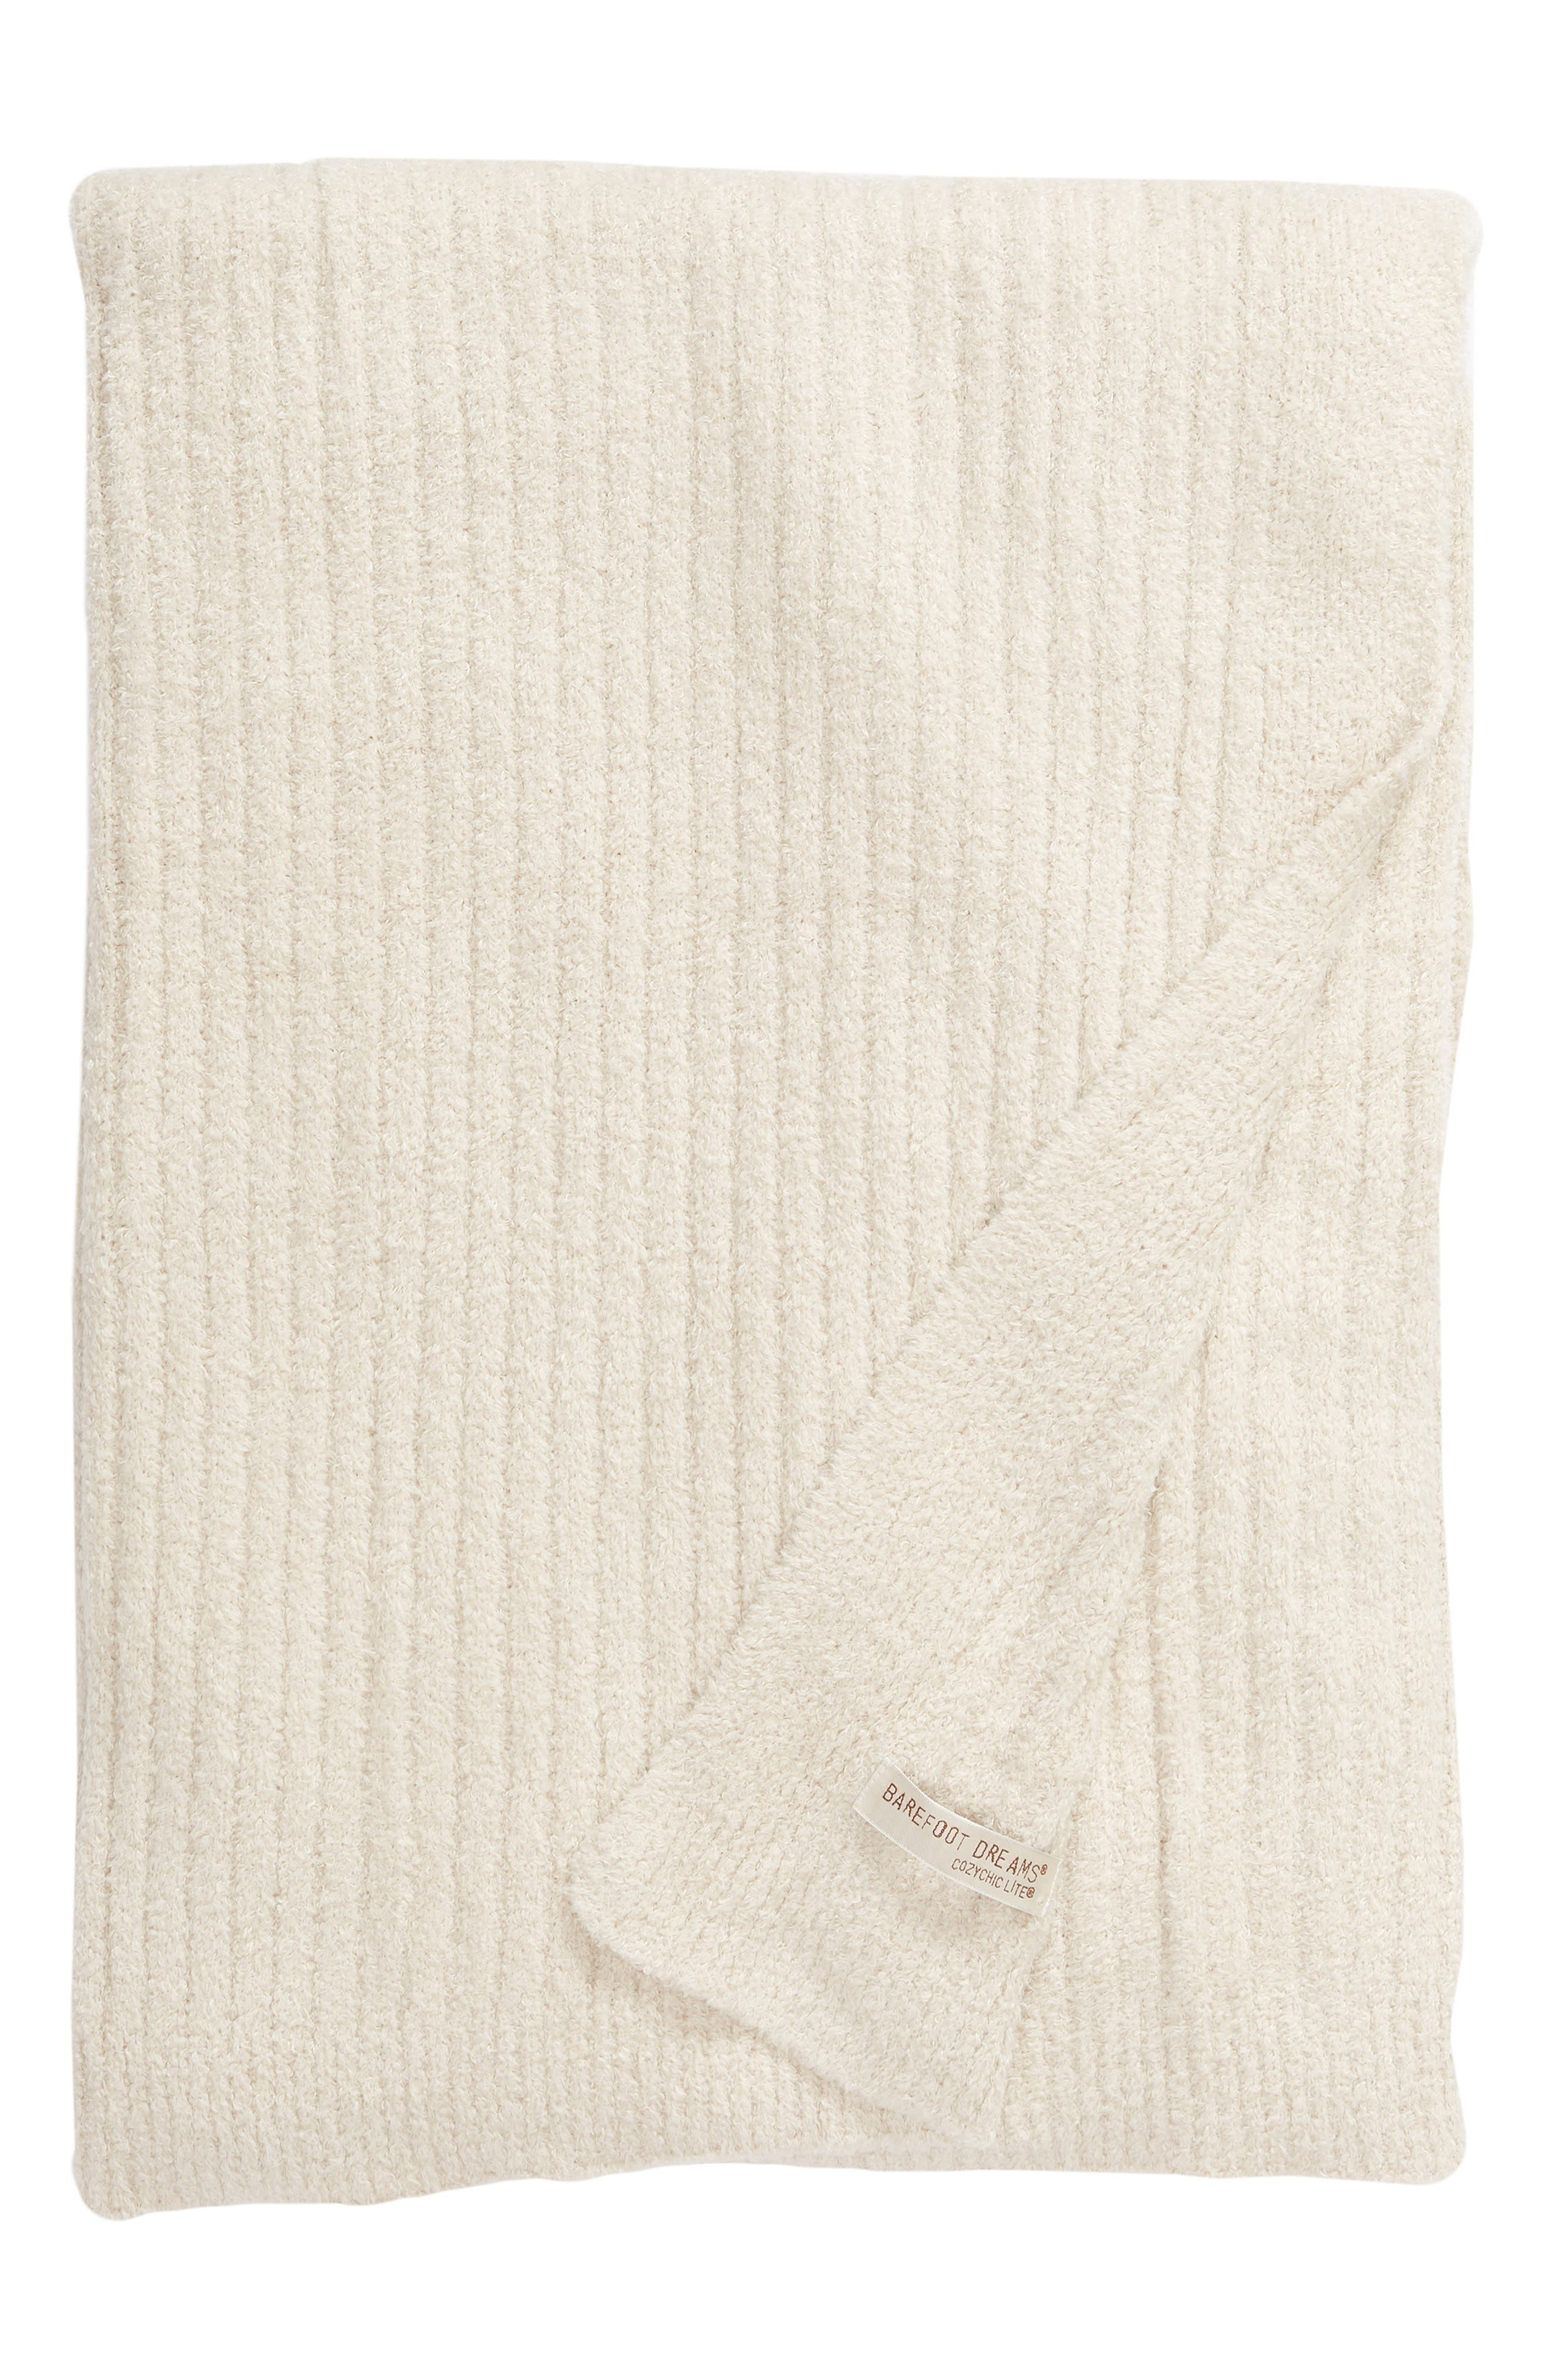 Cozychic<sup>®</sup> Ribbed Throw Blanket,                         Main,                         color, BISQUE